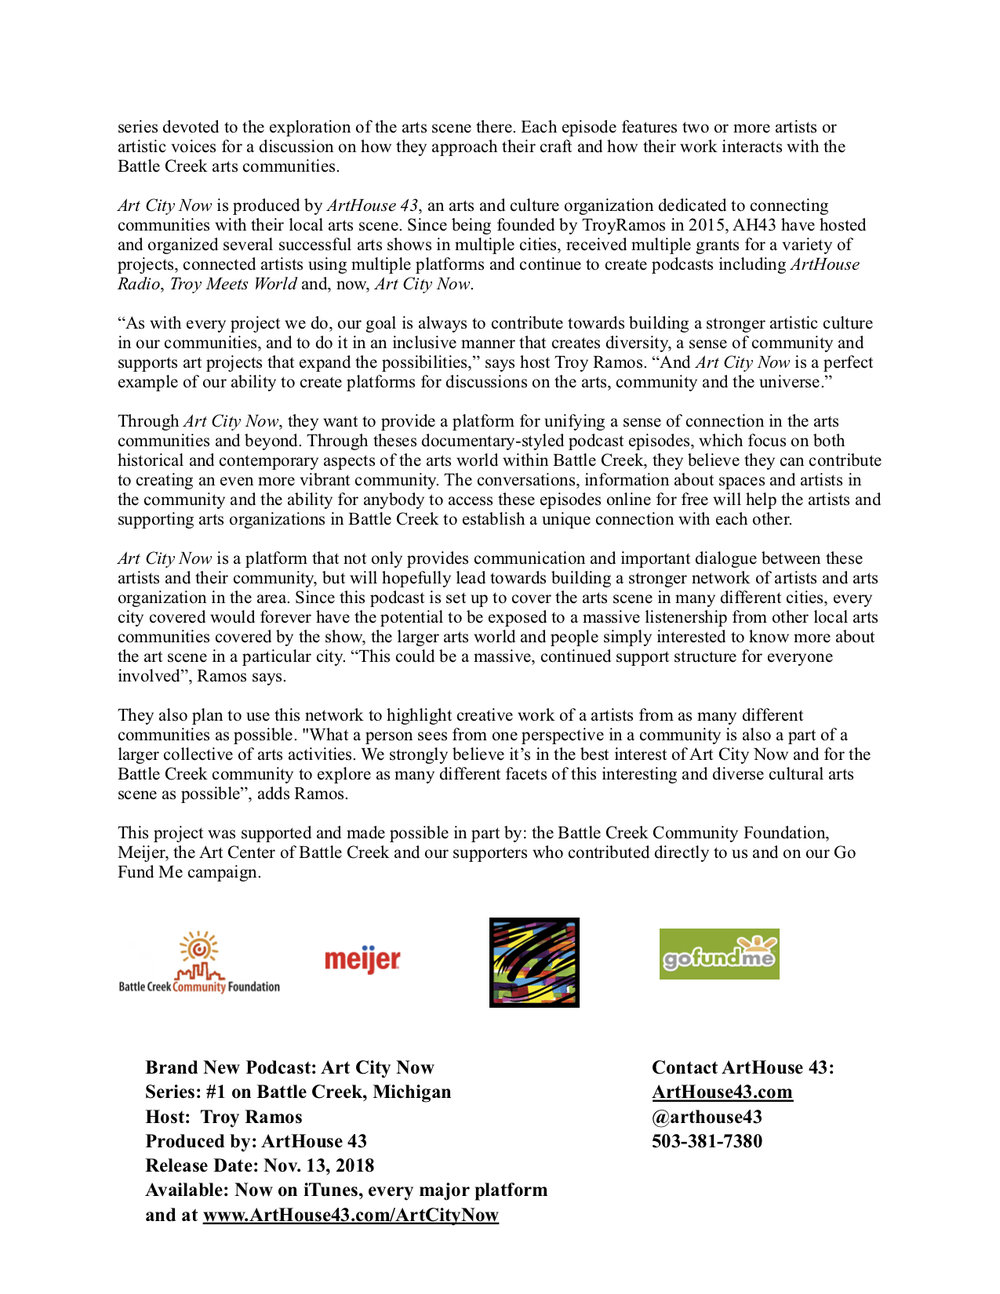 Art City Now Official Press Release P2.jpg